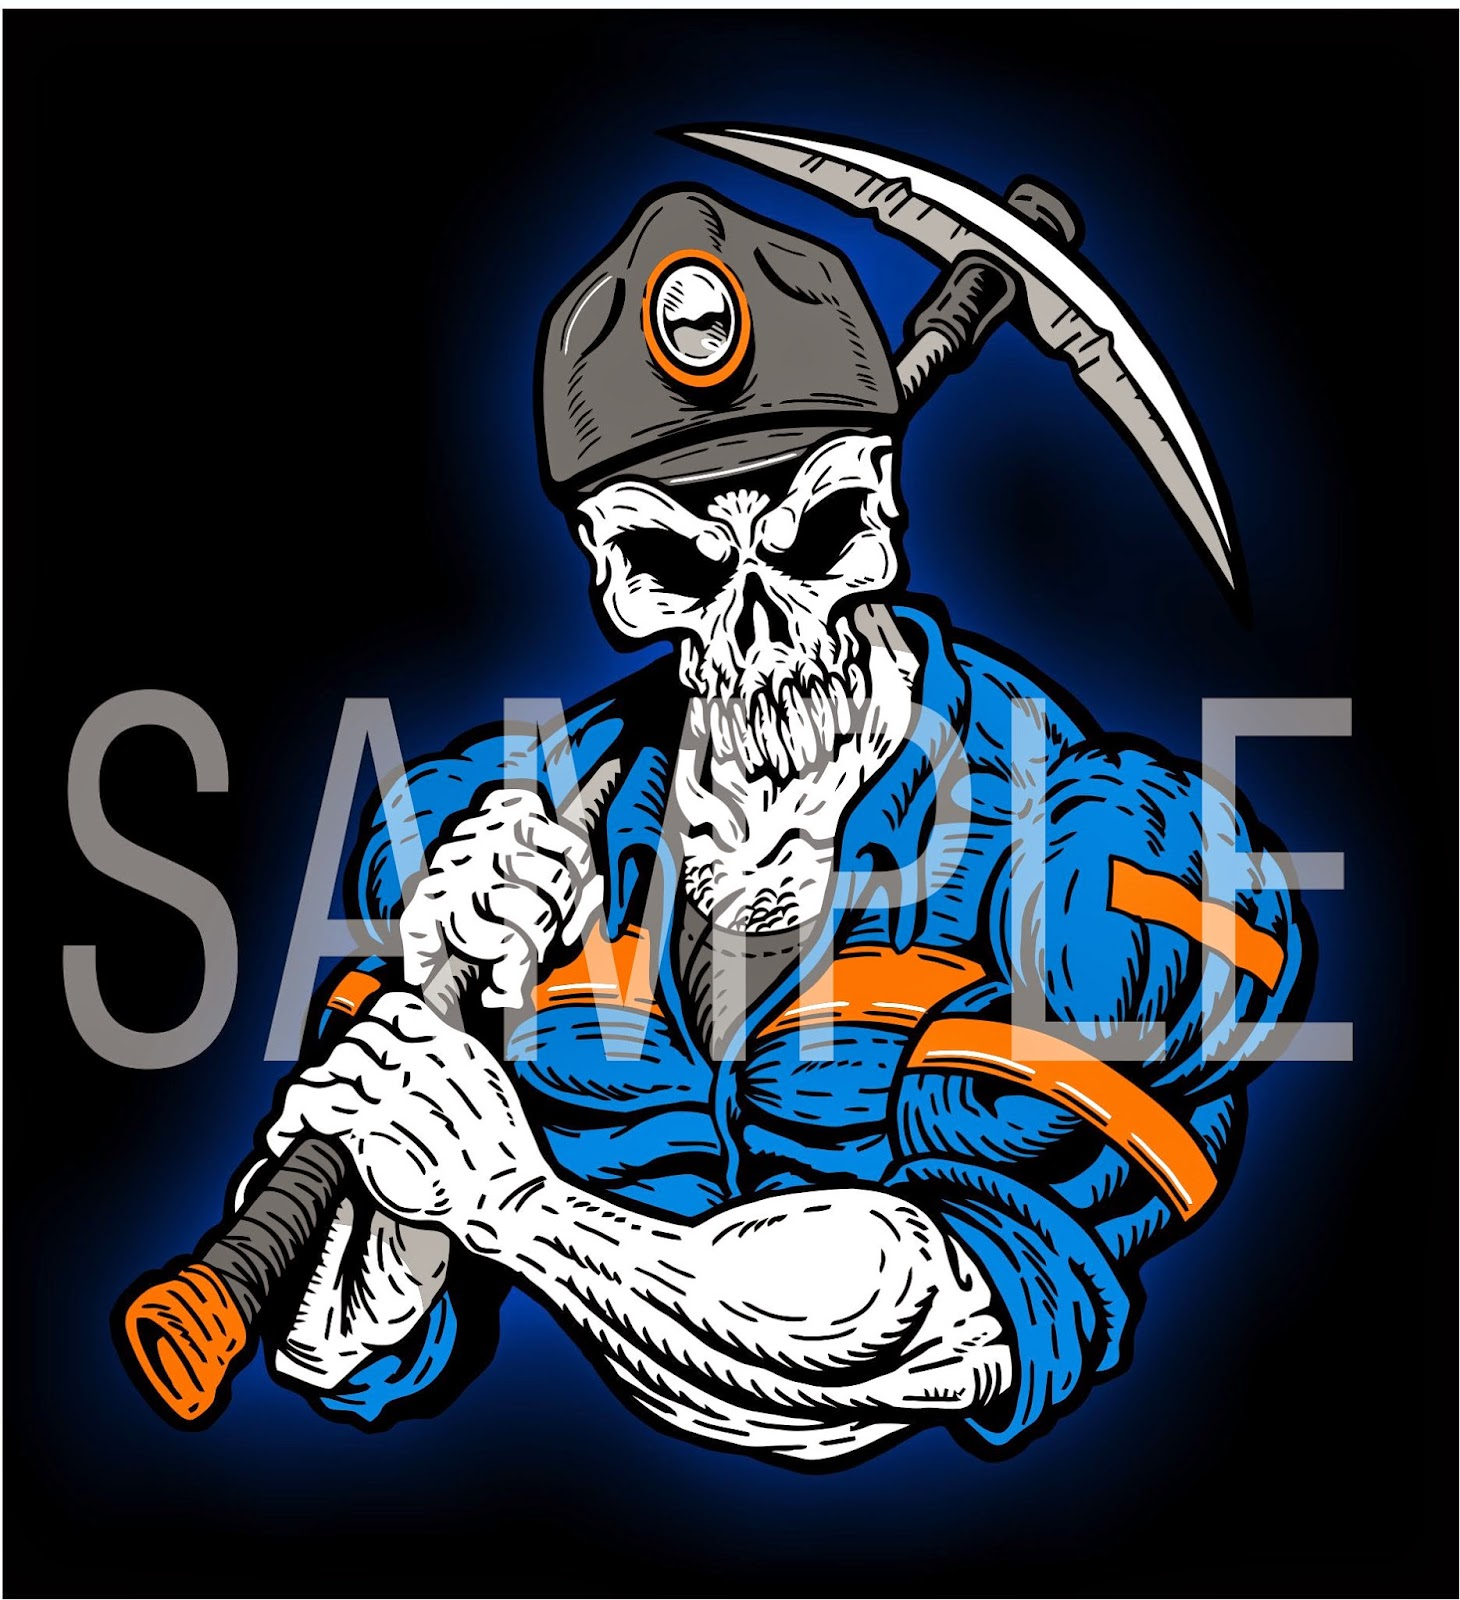 Caol clipart diamond miner 2015 ART SKULL FACE 04